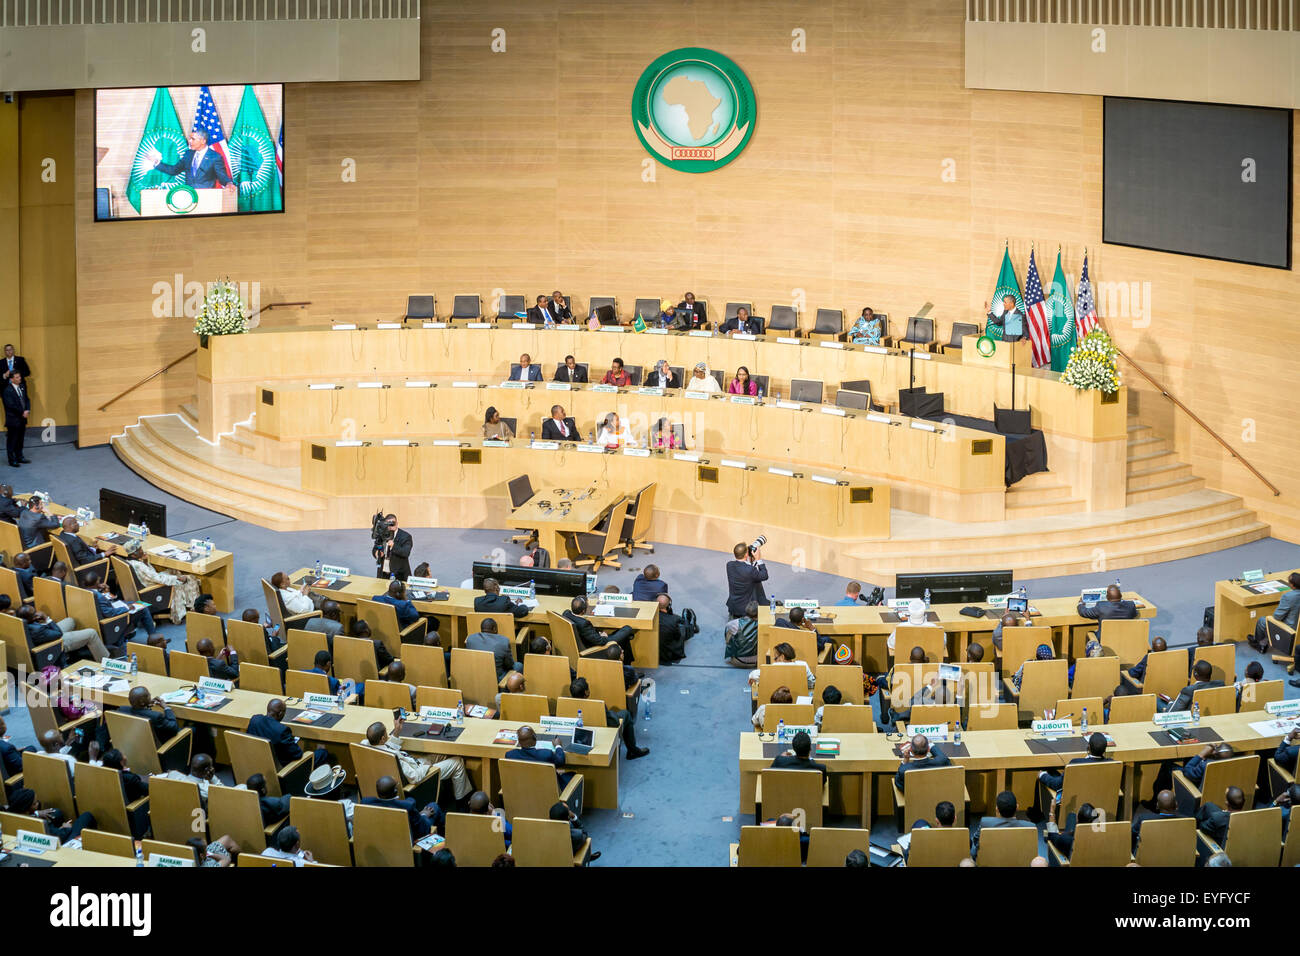 Addis Ababa, Ethiopia. 28th July, 2015. President Obama delivers a keynote speech to the African continent and its Stock Photo